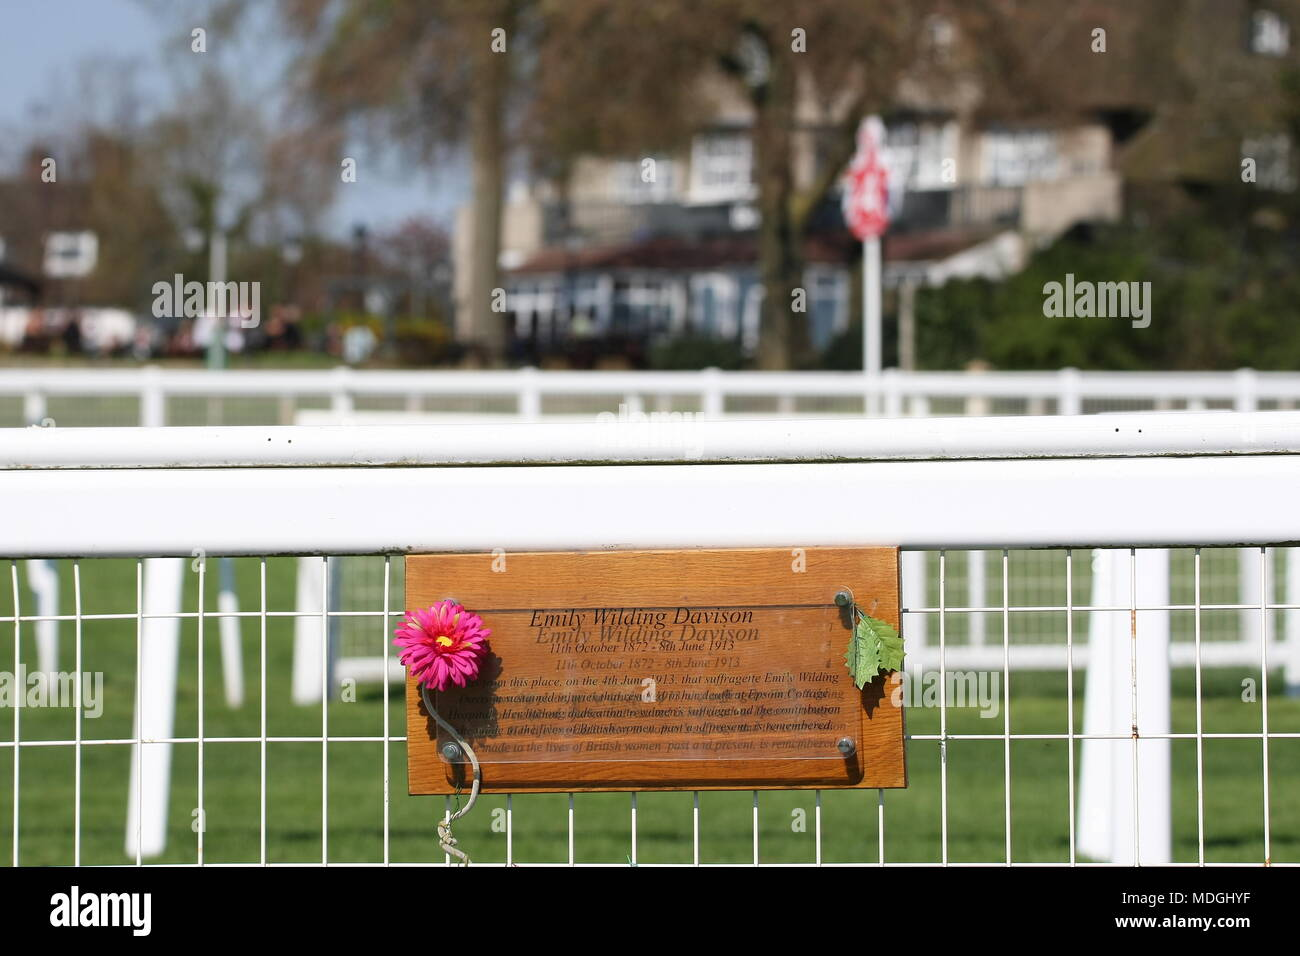 19th April, 2018 Epsom Downs, Surrey, UK  The memorial, on Tattenham Corner, to Emily Wilding Davison, the suffragette who ran in front of the Kings horse at the Derby in 1913, in the cause of womens right to vote in the UK's General Elections. - Stock Image